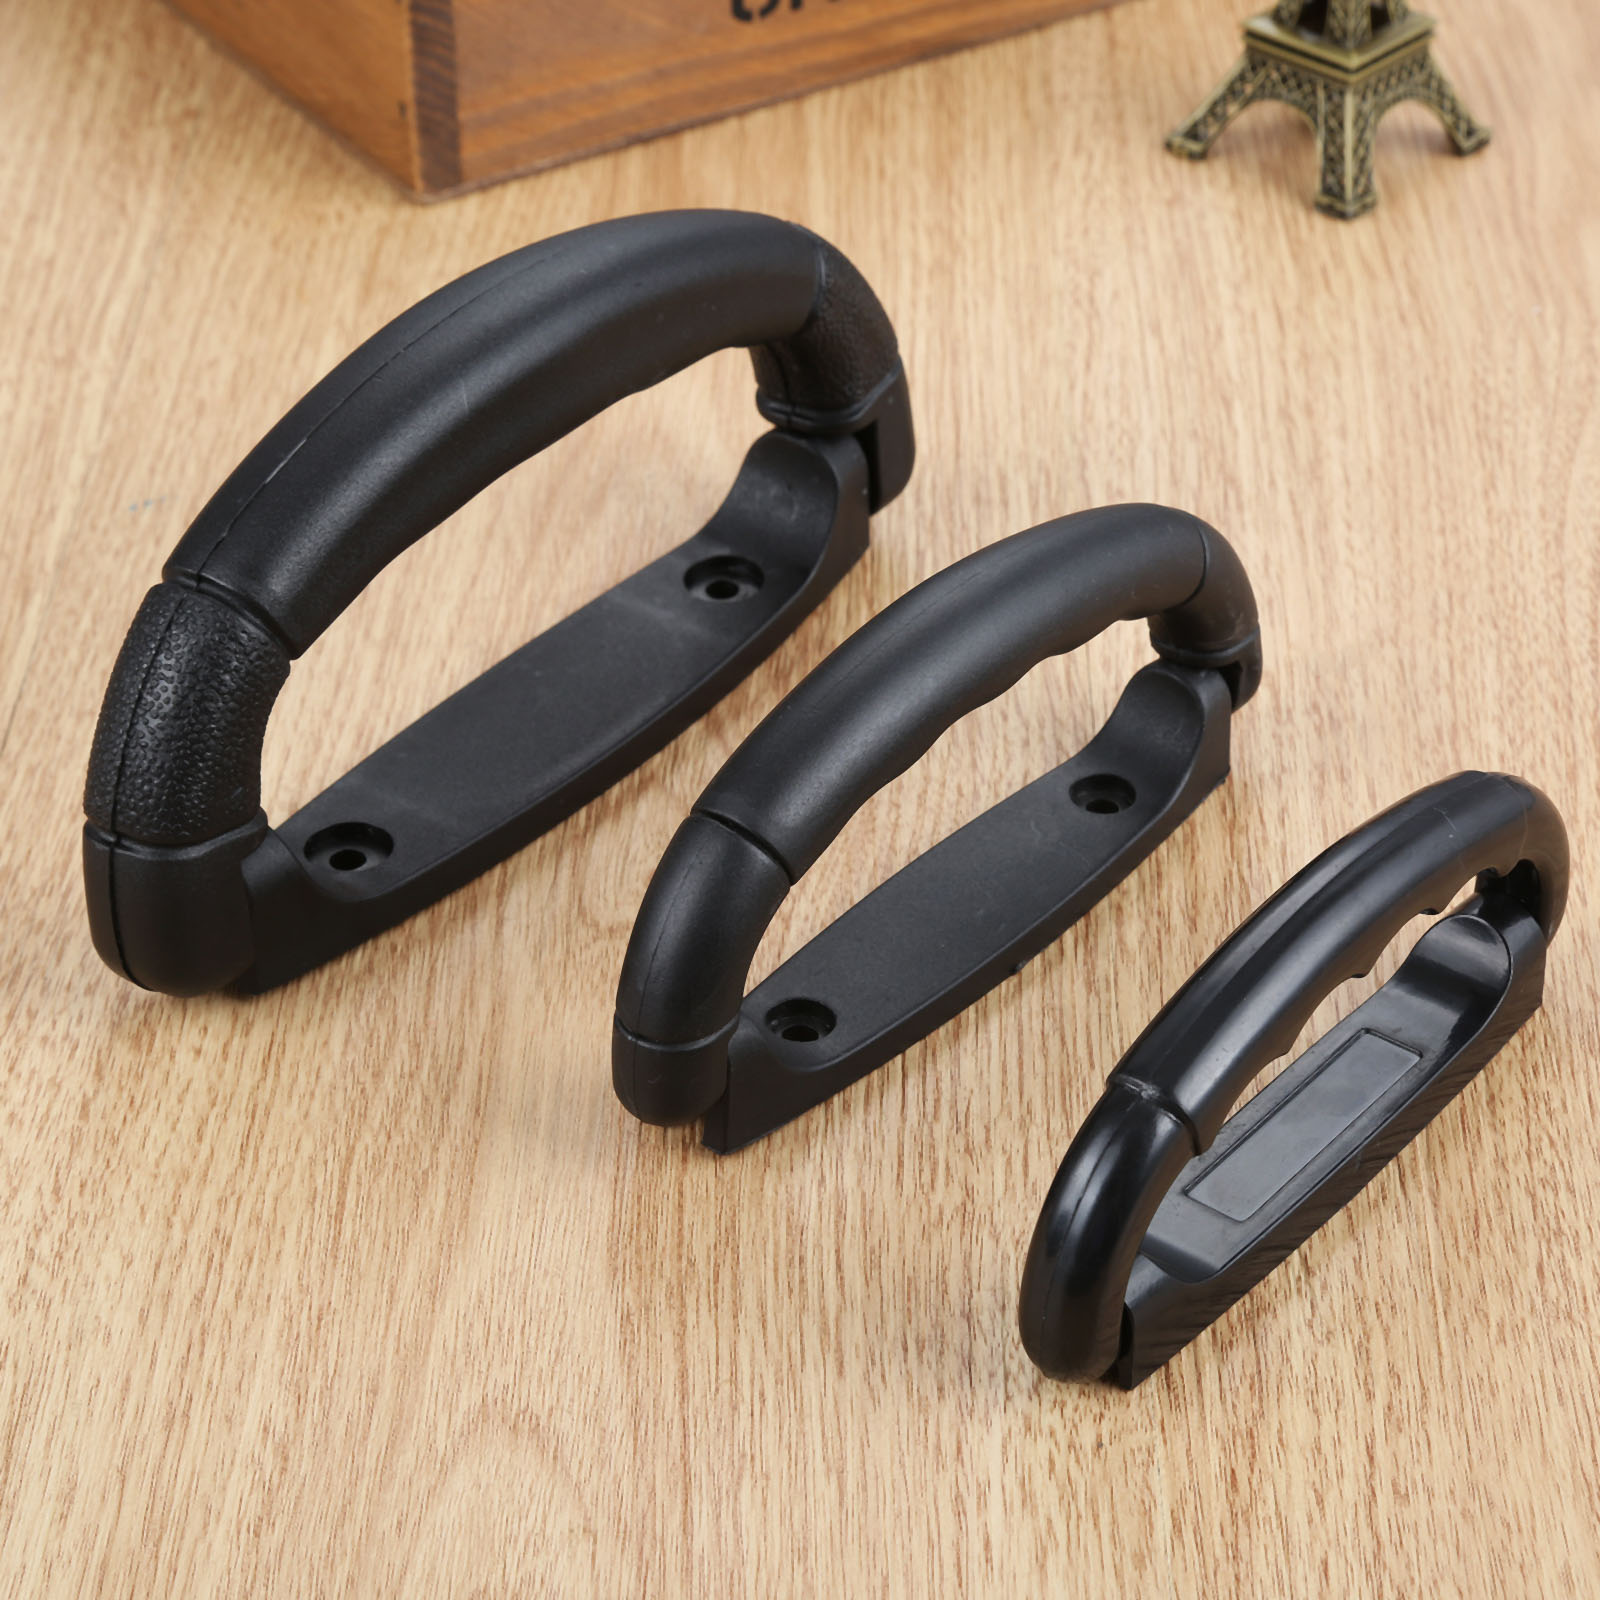 1Pc Plastic Luggage Suitcase Case Box Pull Replacement Carrying Handle Strap Air Bags Box Accessories 108/125/160mm